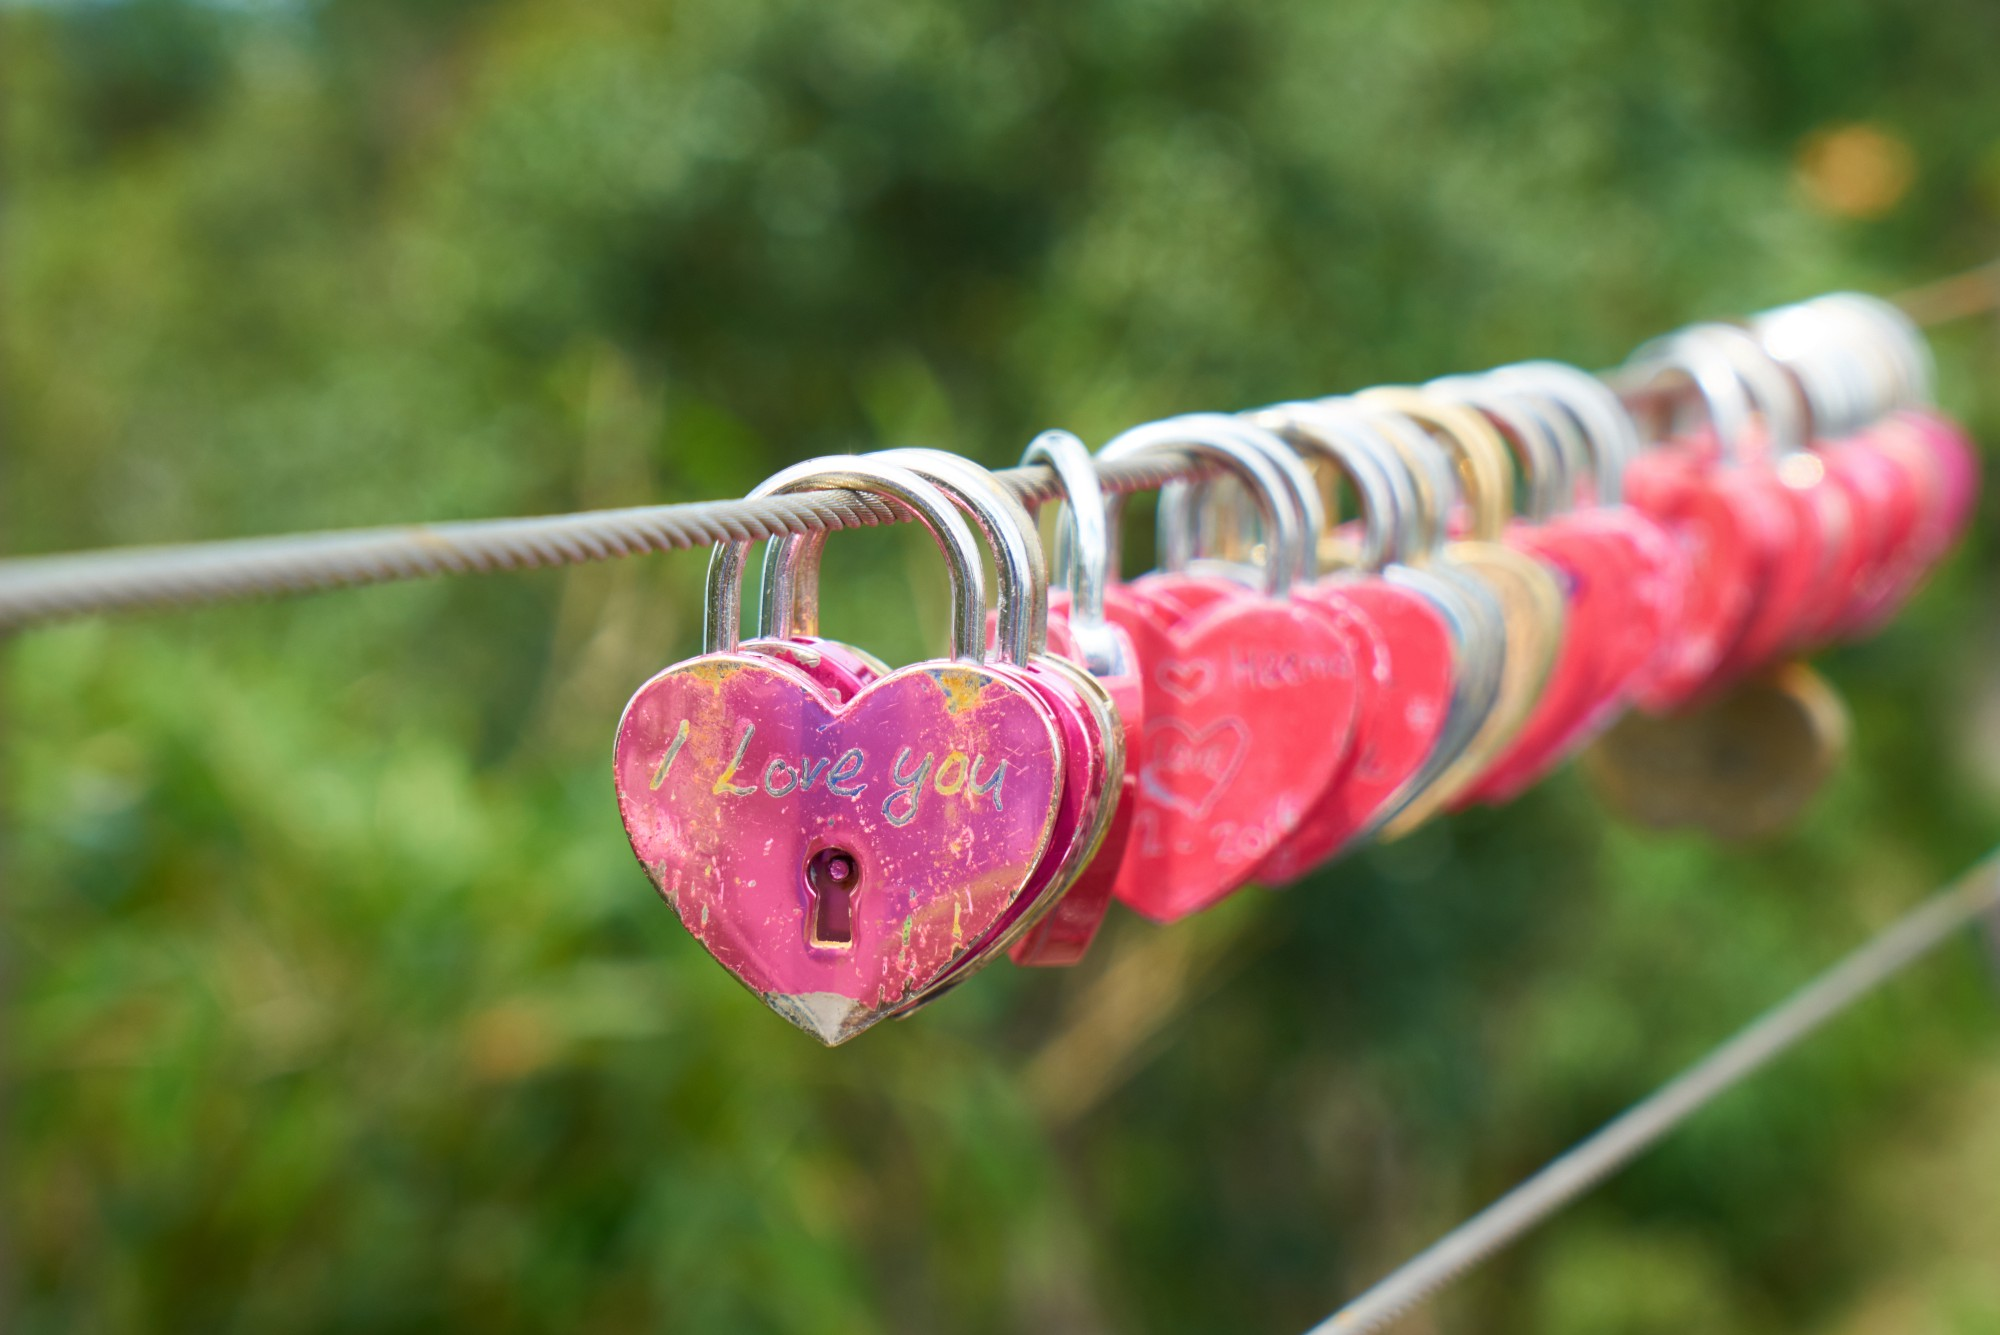 A whole line up of brightly colored padlocks in the of hearts suspended on a wire cable on a bright green background